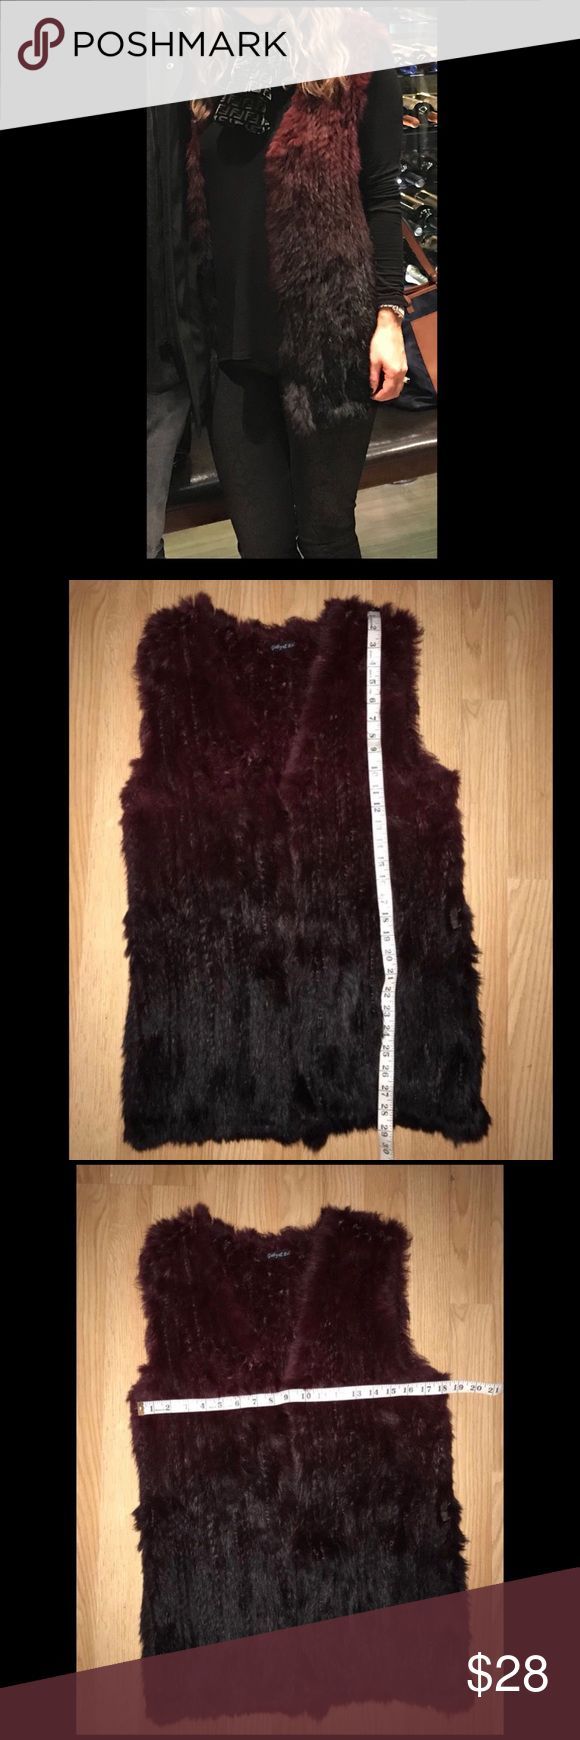 Rabbit Fur Long Vest two tones Black & Purple. Cute but hard to photograph hombre Gabey Eden Rabbit Fur Vest  Light weight  Size S/M Good condition Two tones  Black & Purple Open to reasonable offers. Jackets & Coats Vests